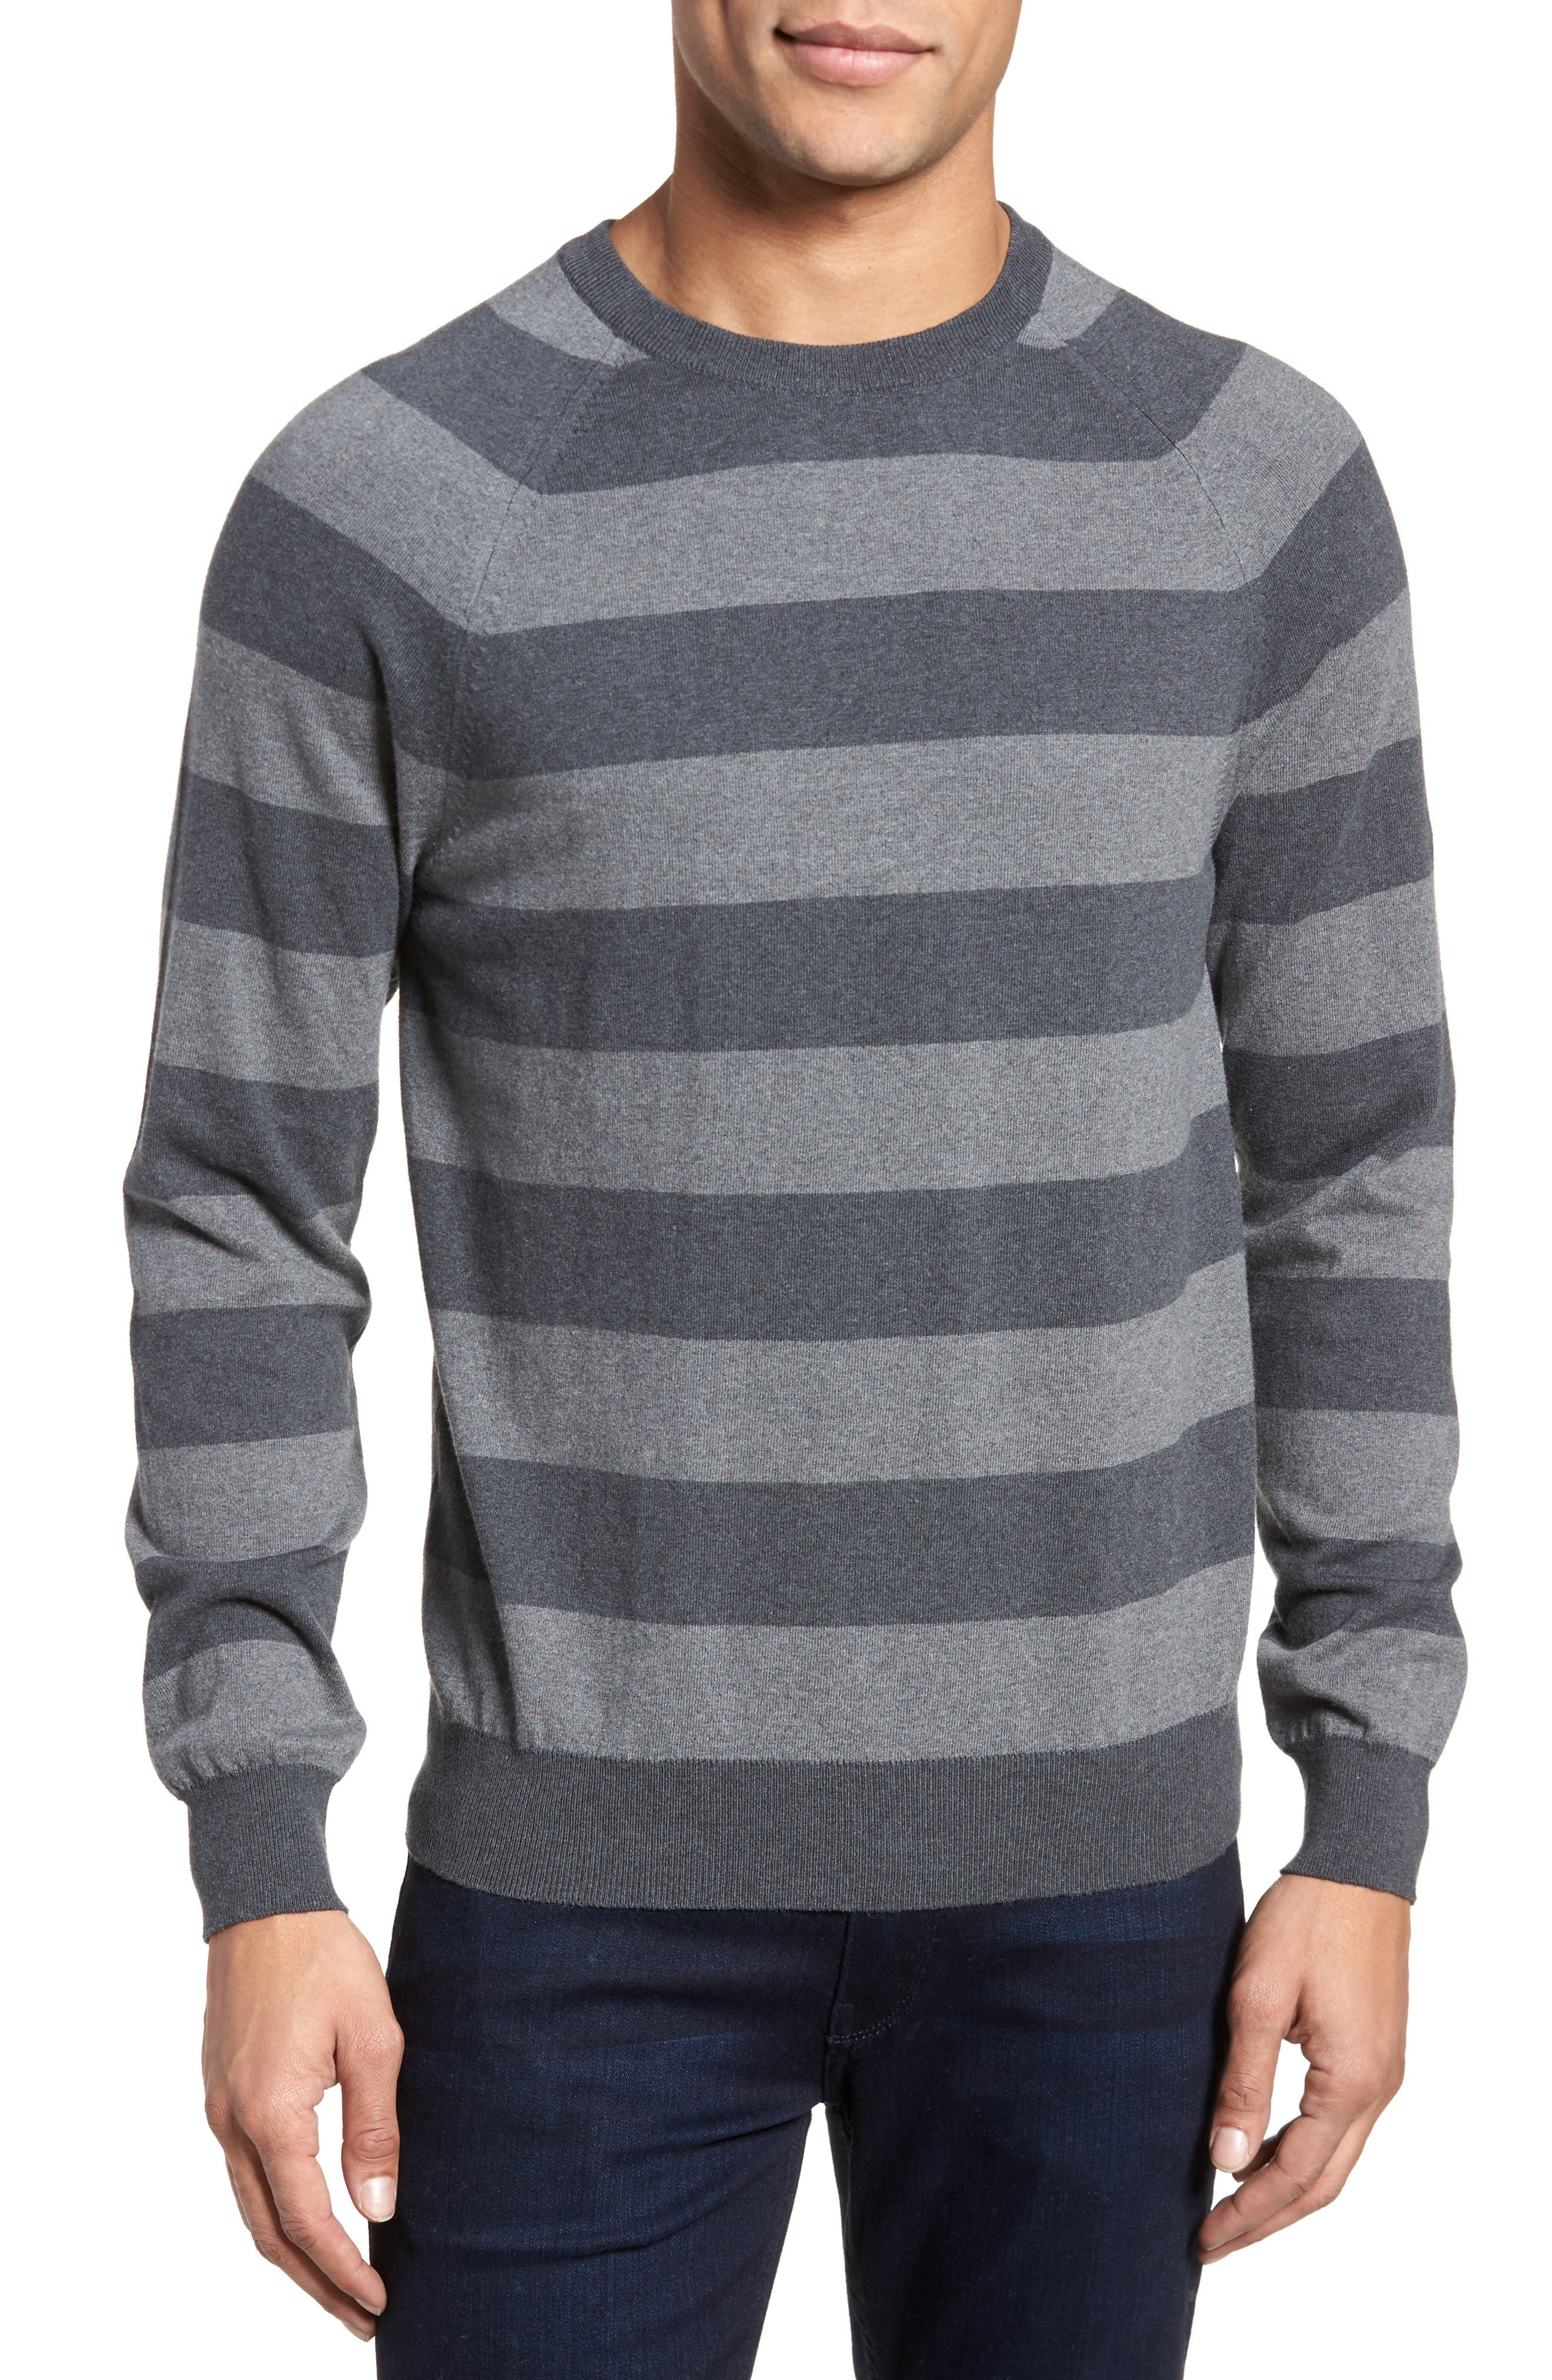 Stripe Stretch Cotton Sweater,                             Main thumbnail 1, color,                             Mid Grey/ Charcoal Melange